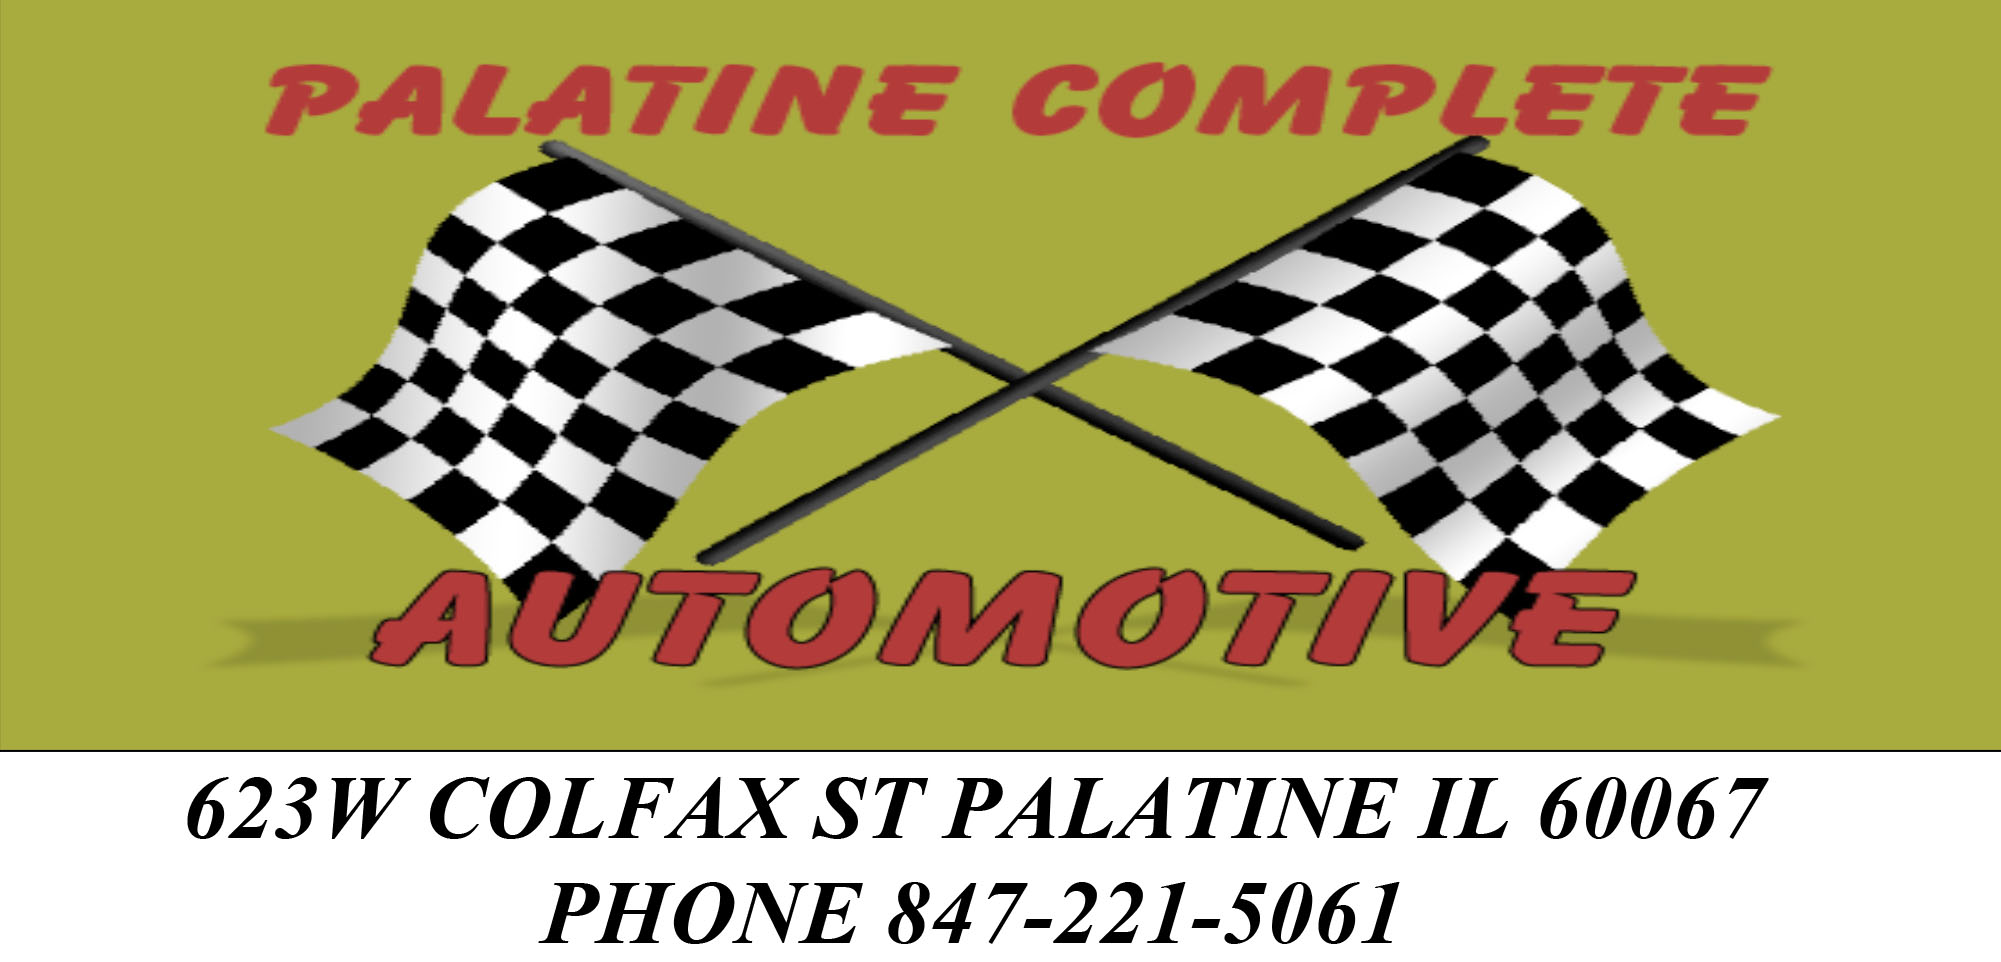 Palatine Complete Automotive